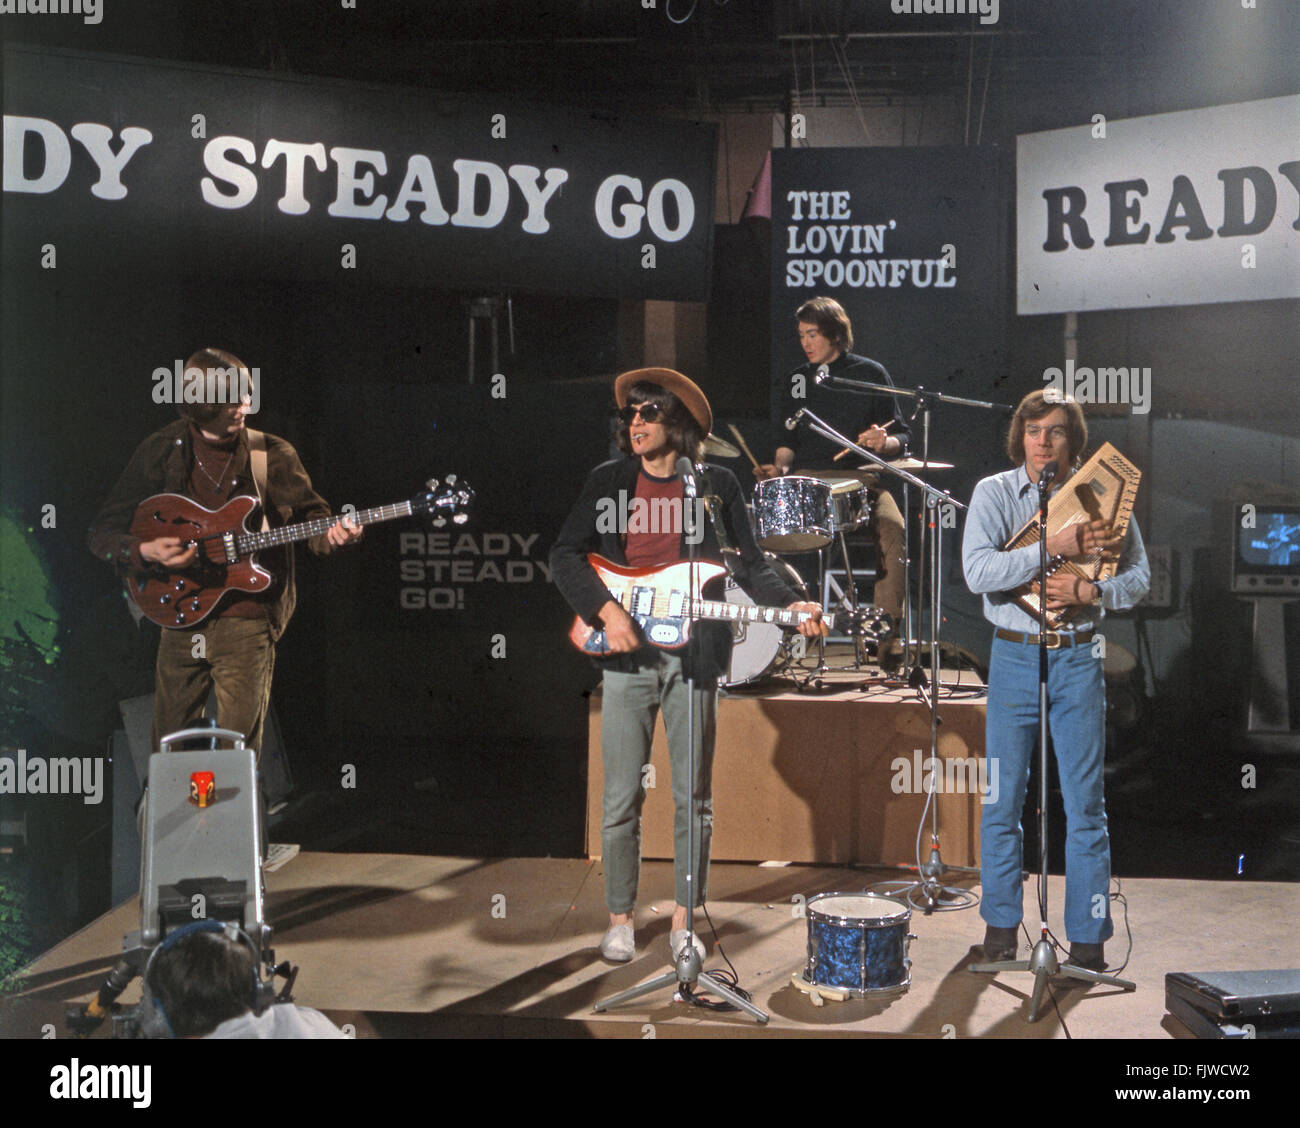 Image result for lovin spoonful ready steady go